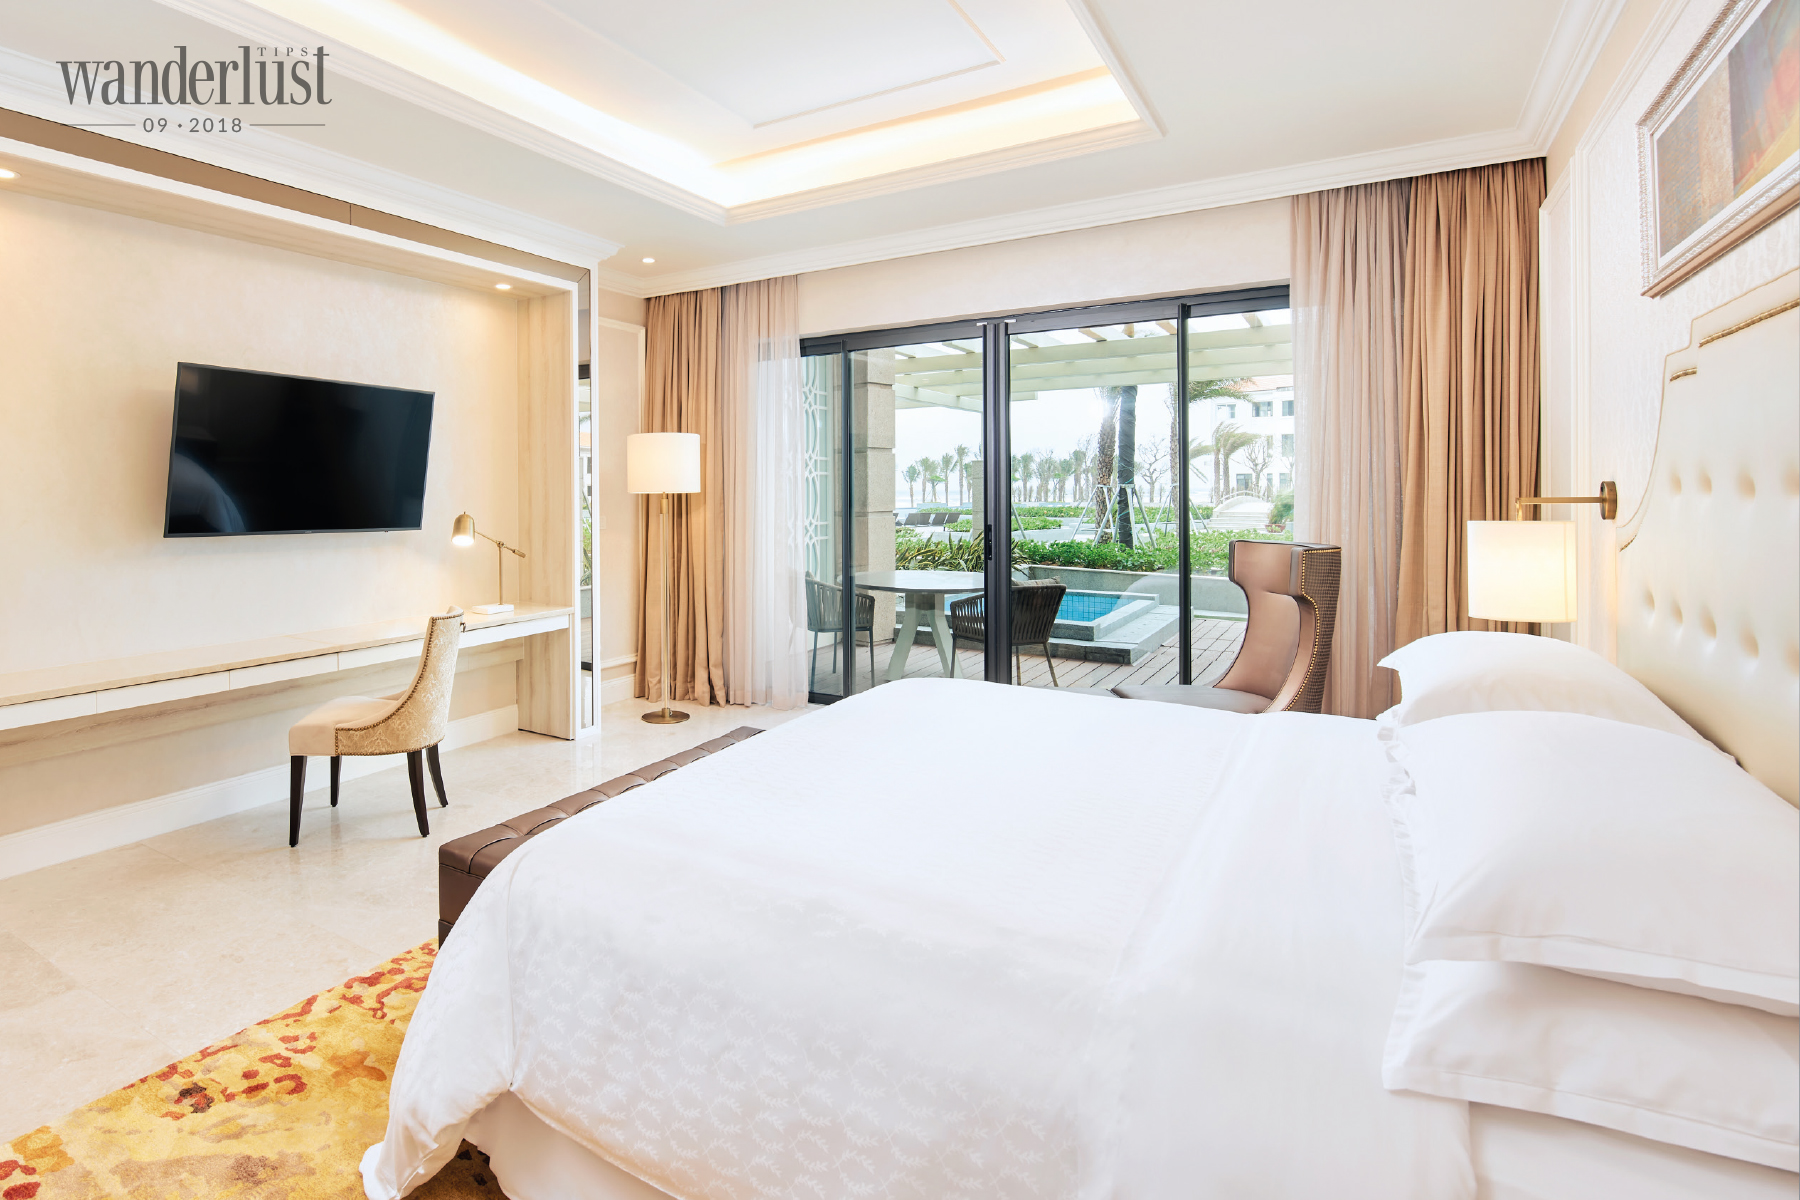 Wanderlust Tips Magazine | Interview with Frank Bochmann - General Manager of Sheraton Grand Danang Resort